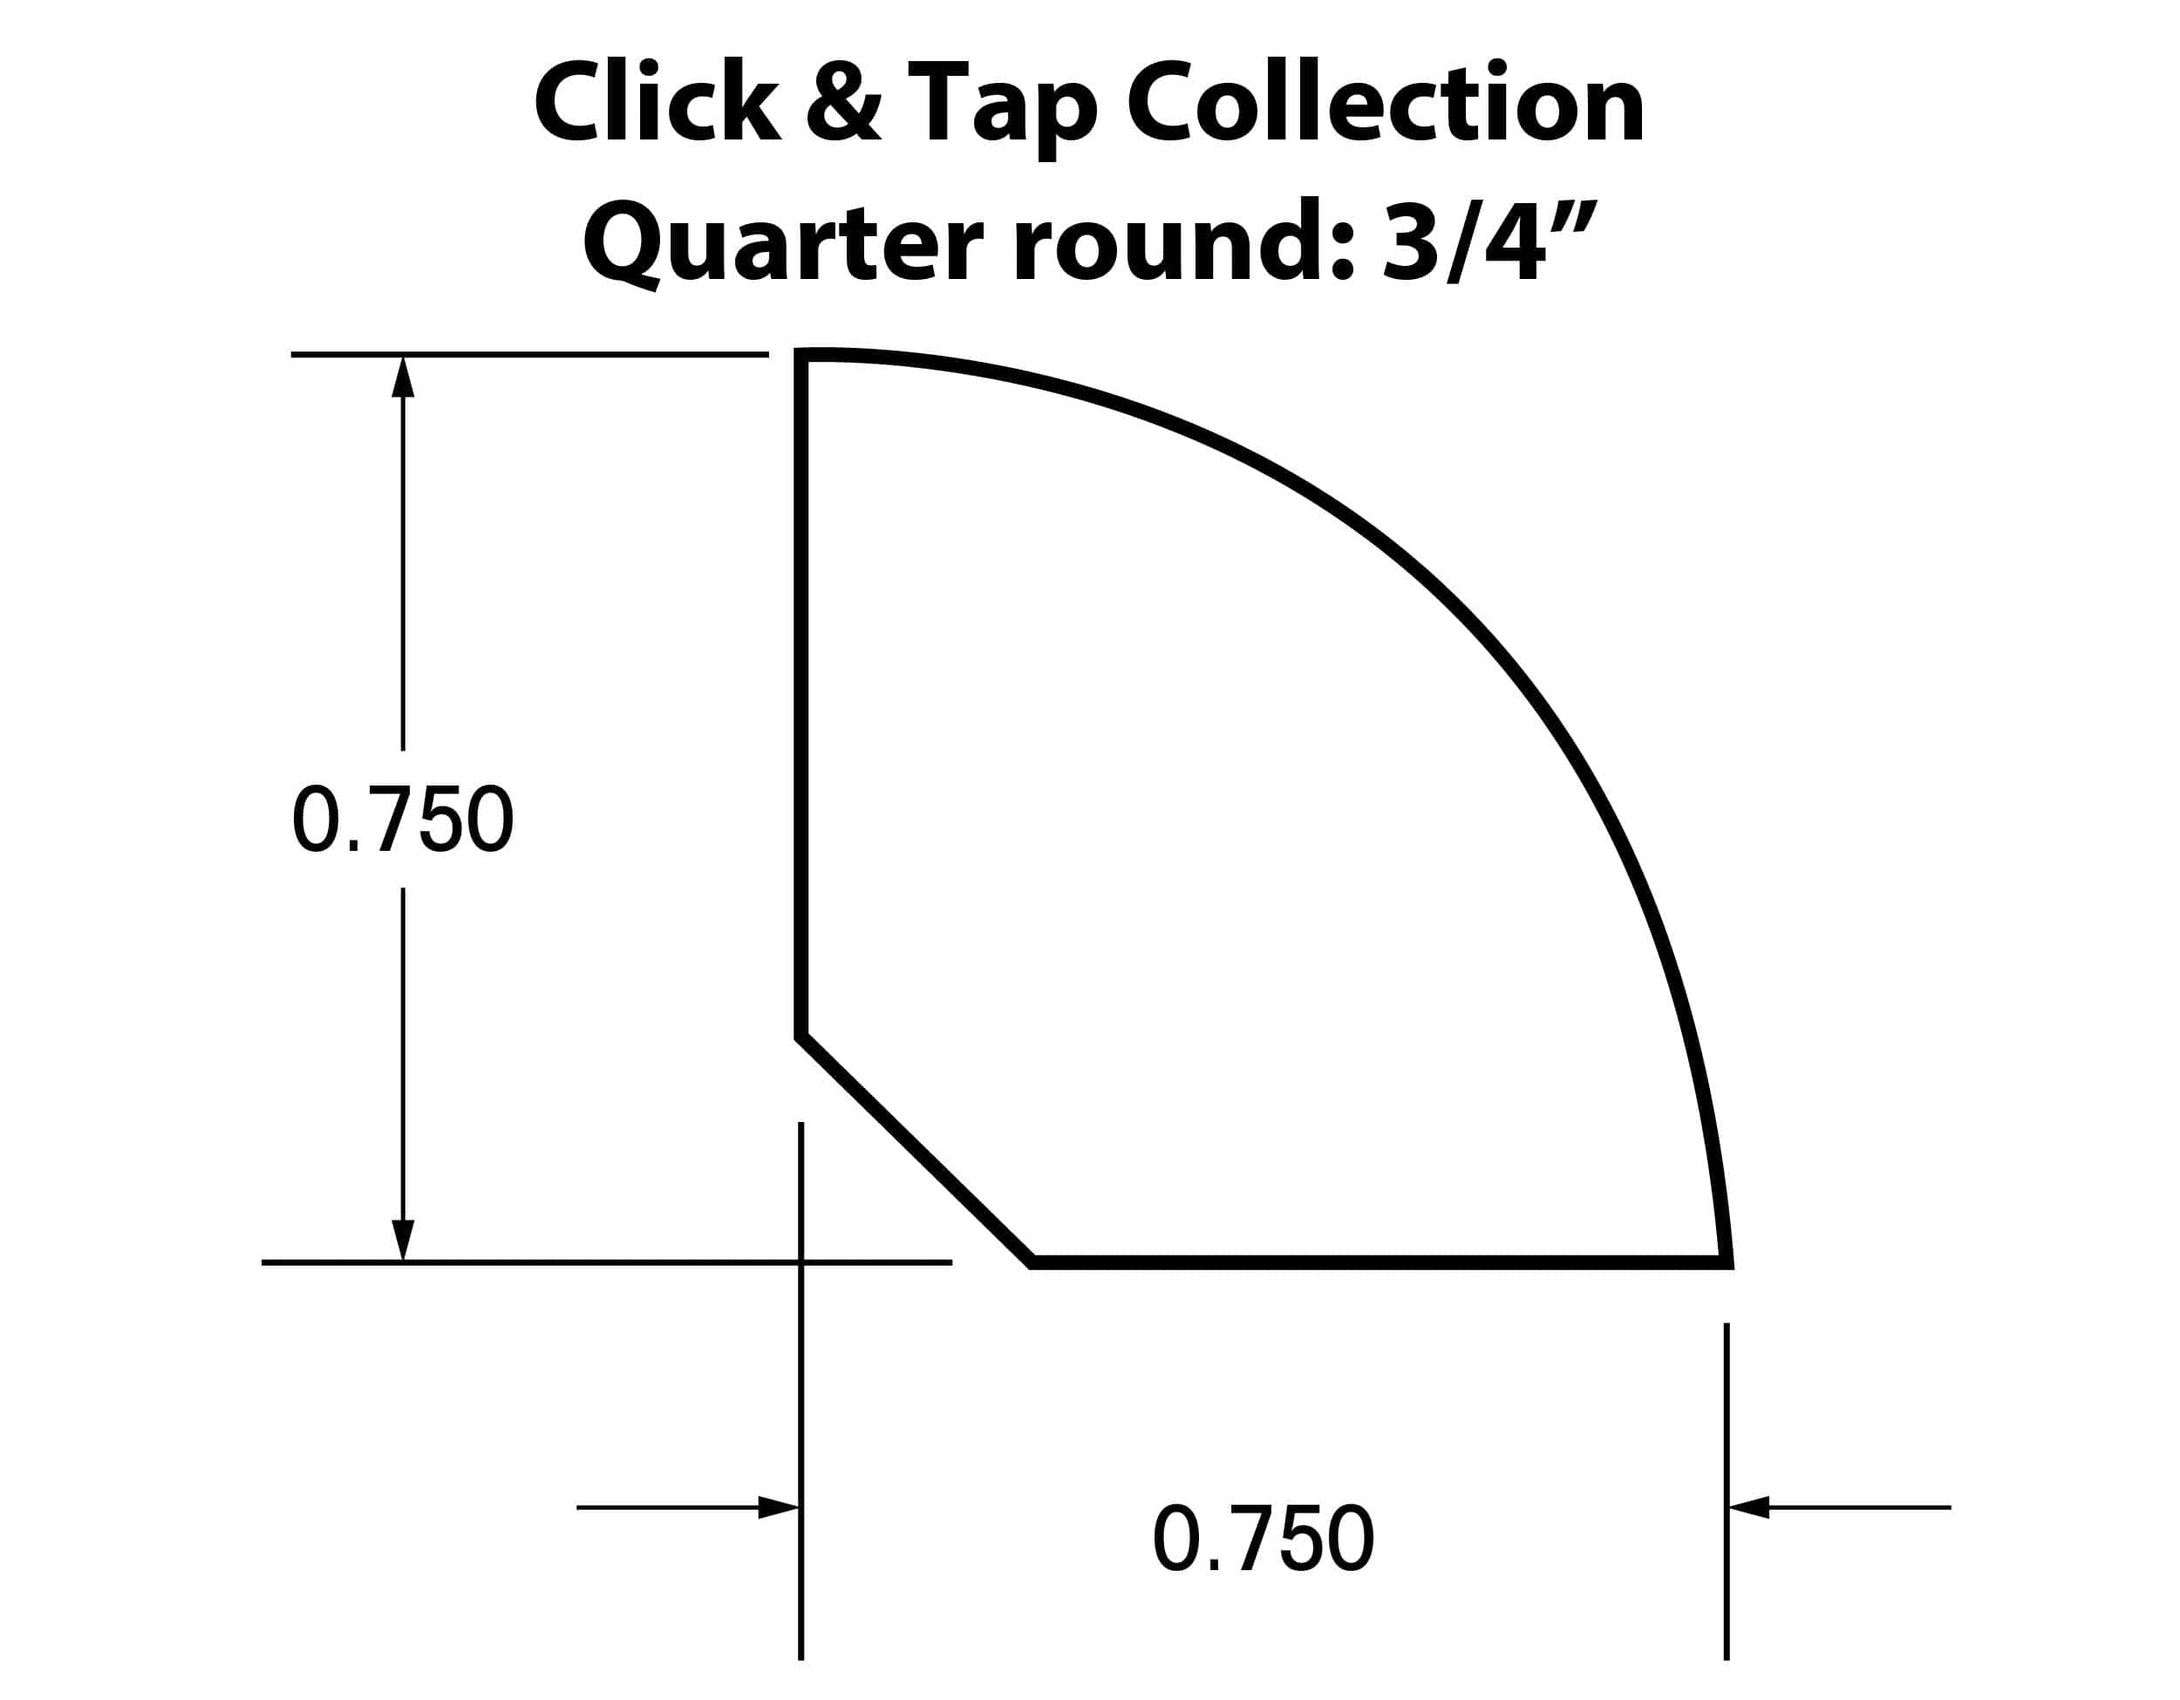 Quarter Round Moldings for the Click & Tap Collection